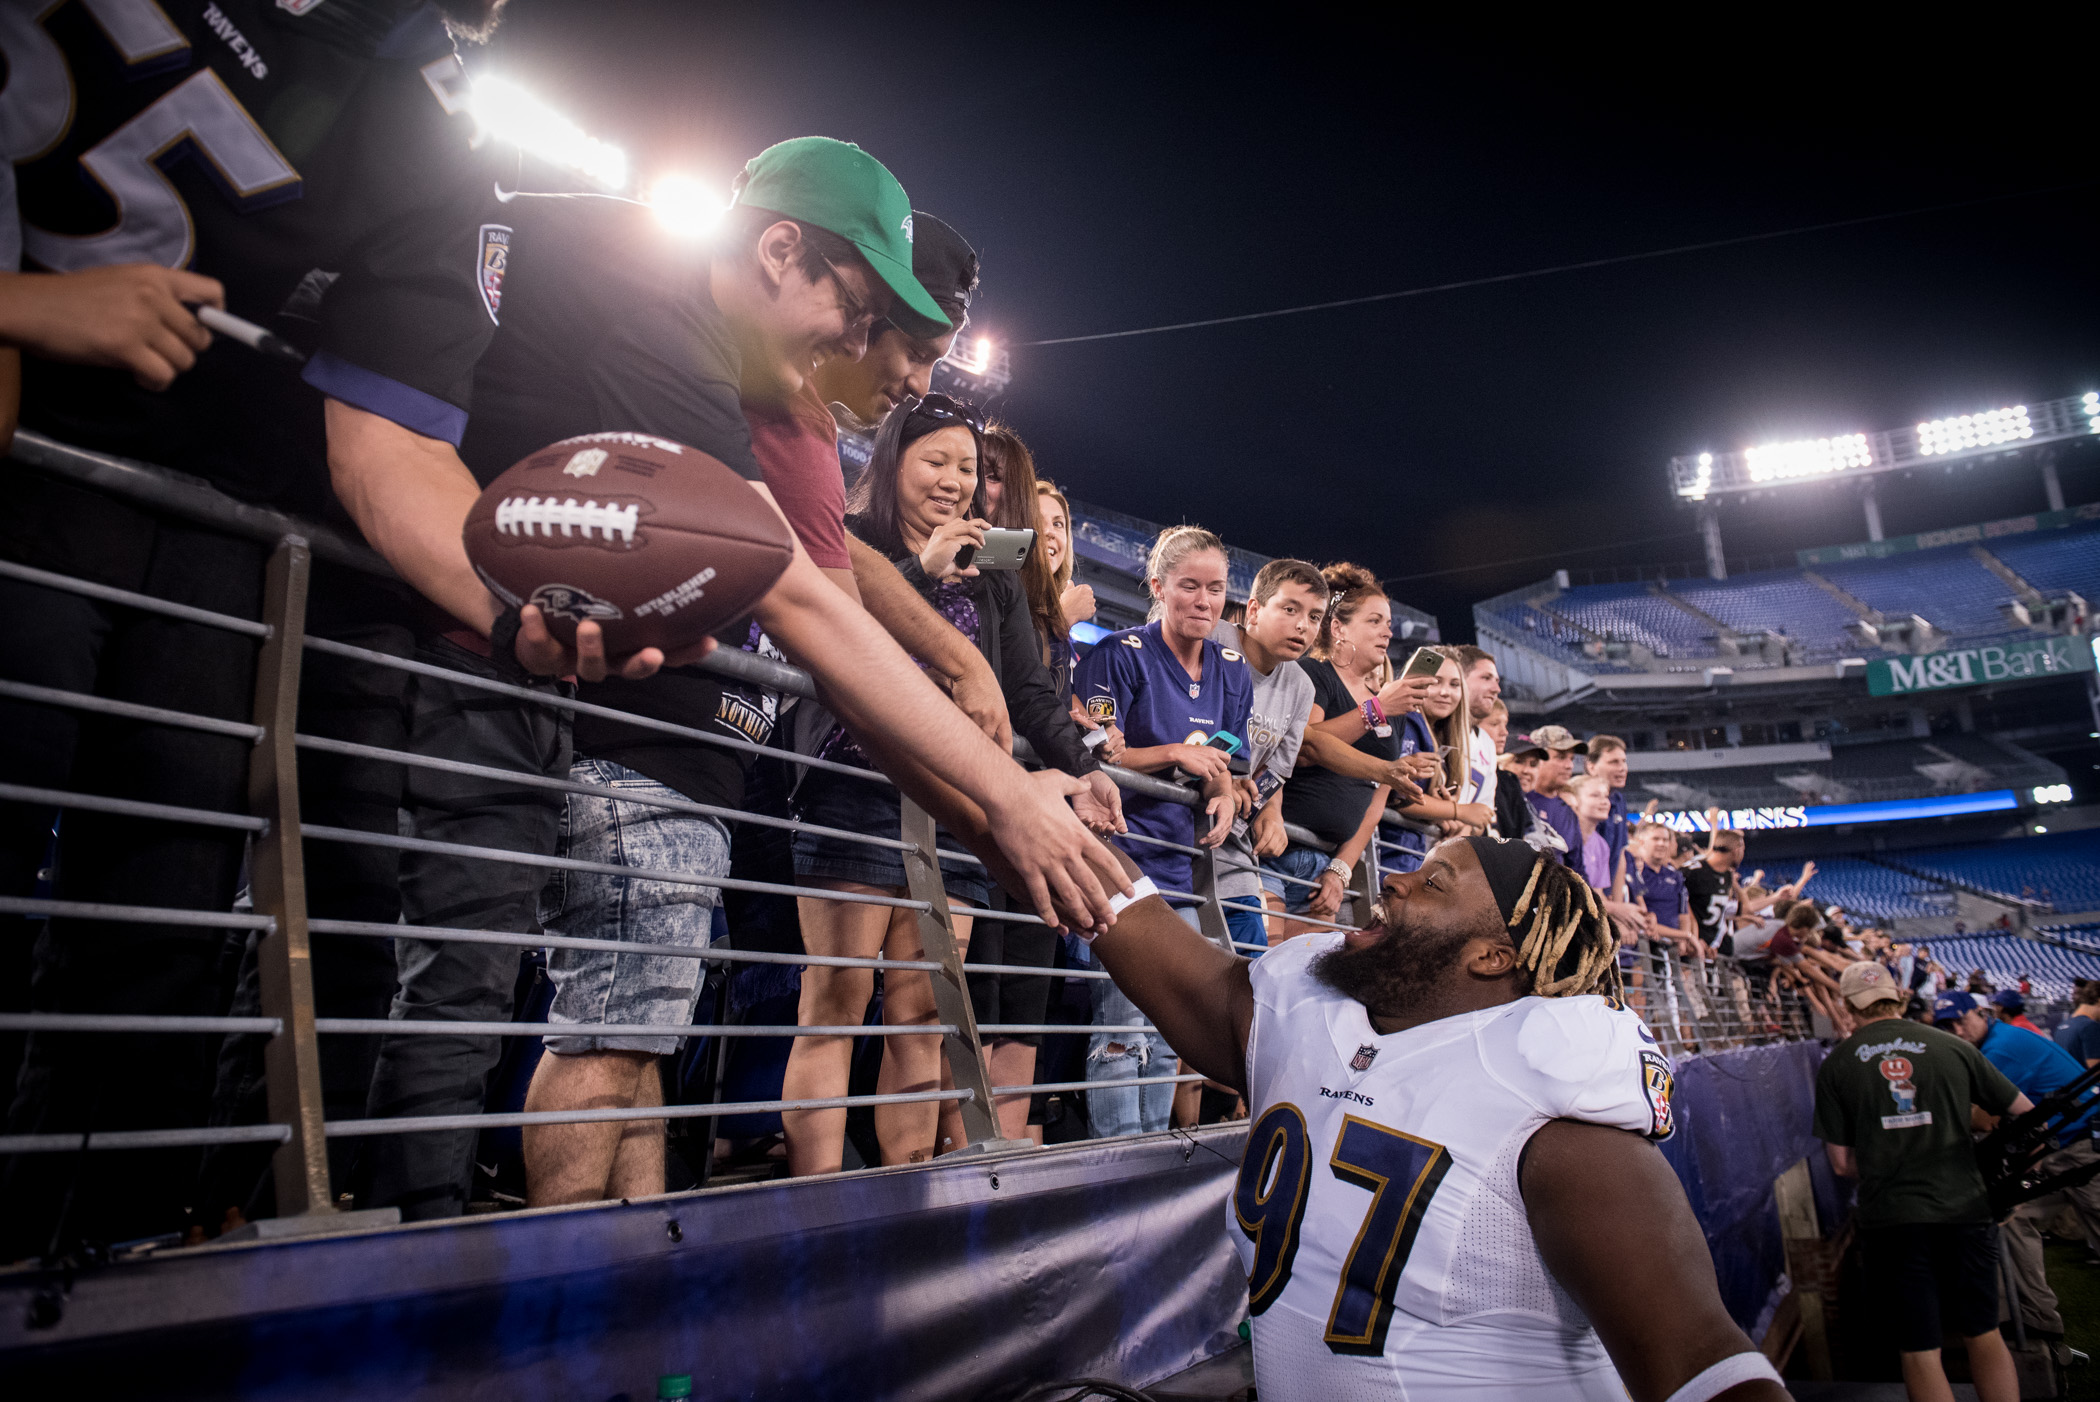 Baltimore Ravens defensive tackle Michael Pierce #97 interacts with fans after a preseason game against the Washington Redskins at M&T Bank Stadium in Baltimore on Thursday, Aug. 10, 2017. The Ravens defeated the Redskins 23-3. (Michael Ares / The Baltimore Sun)